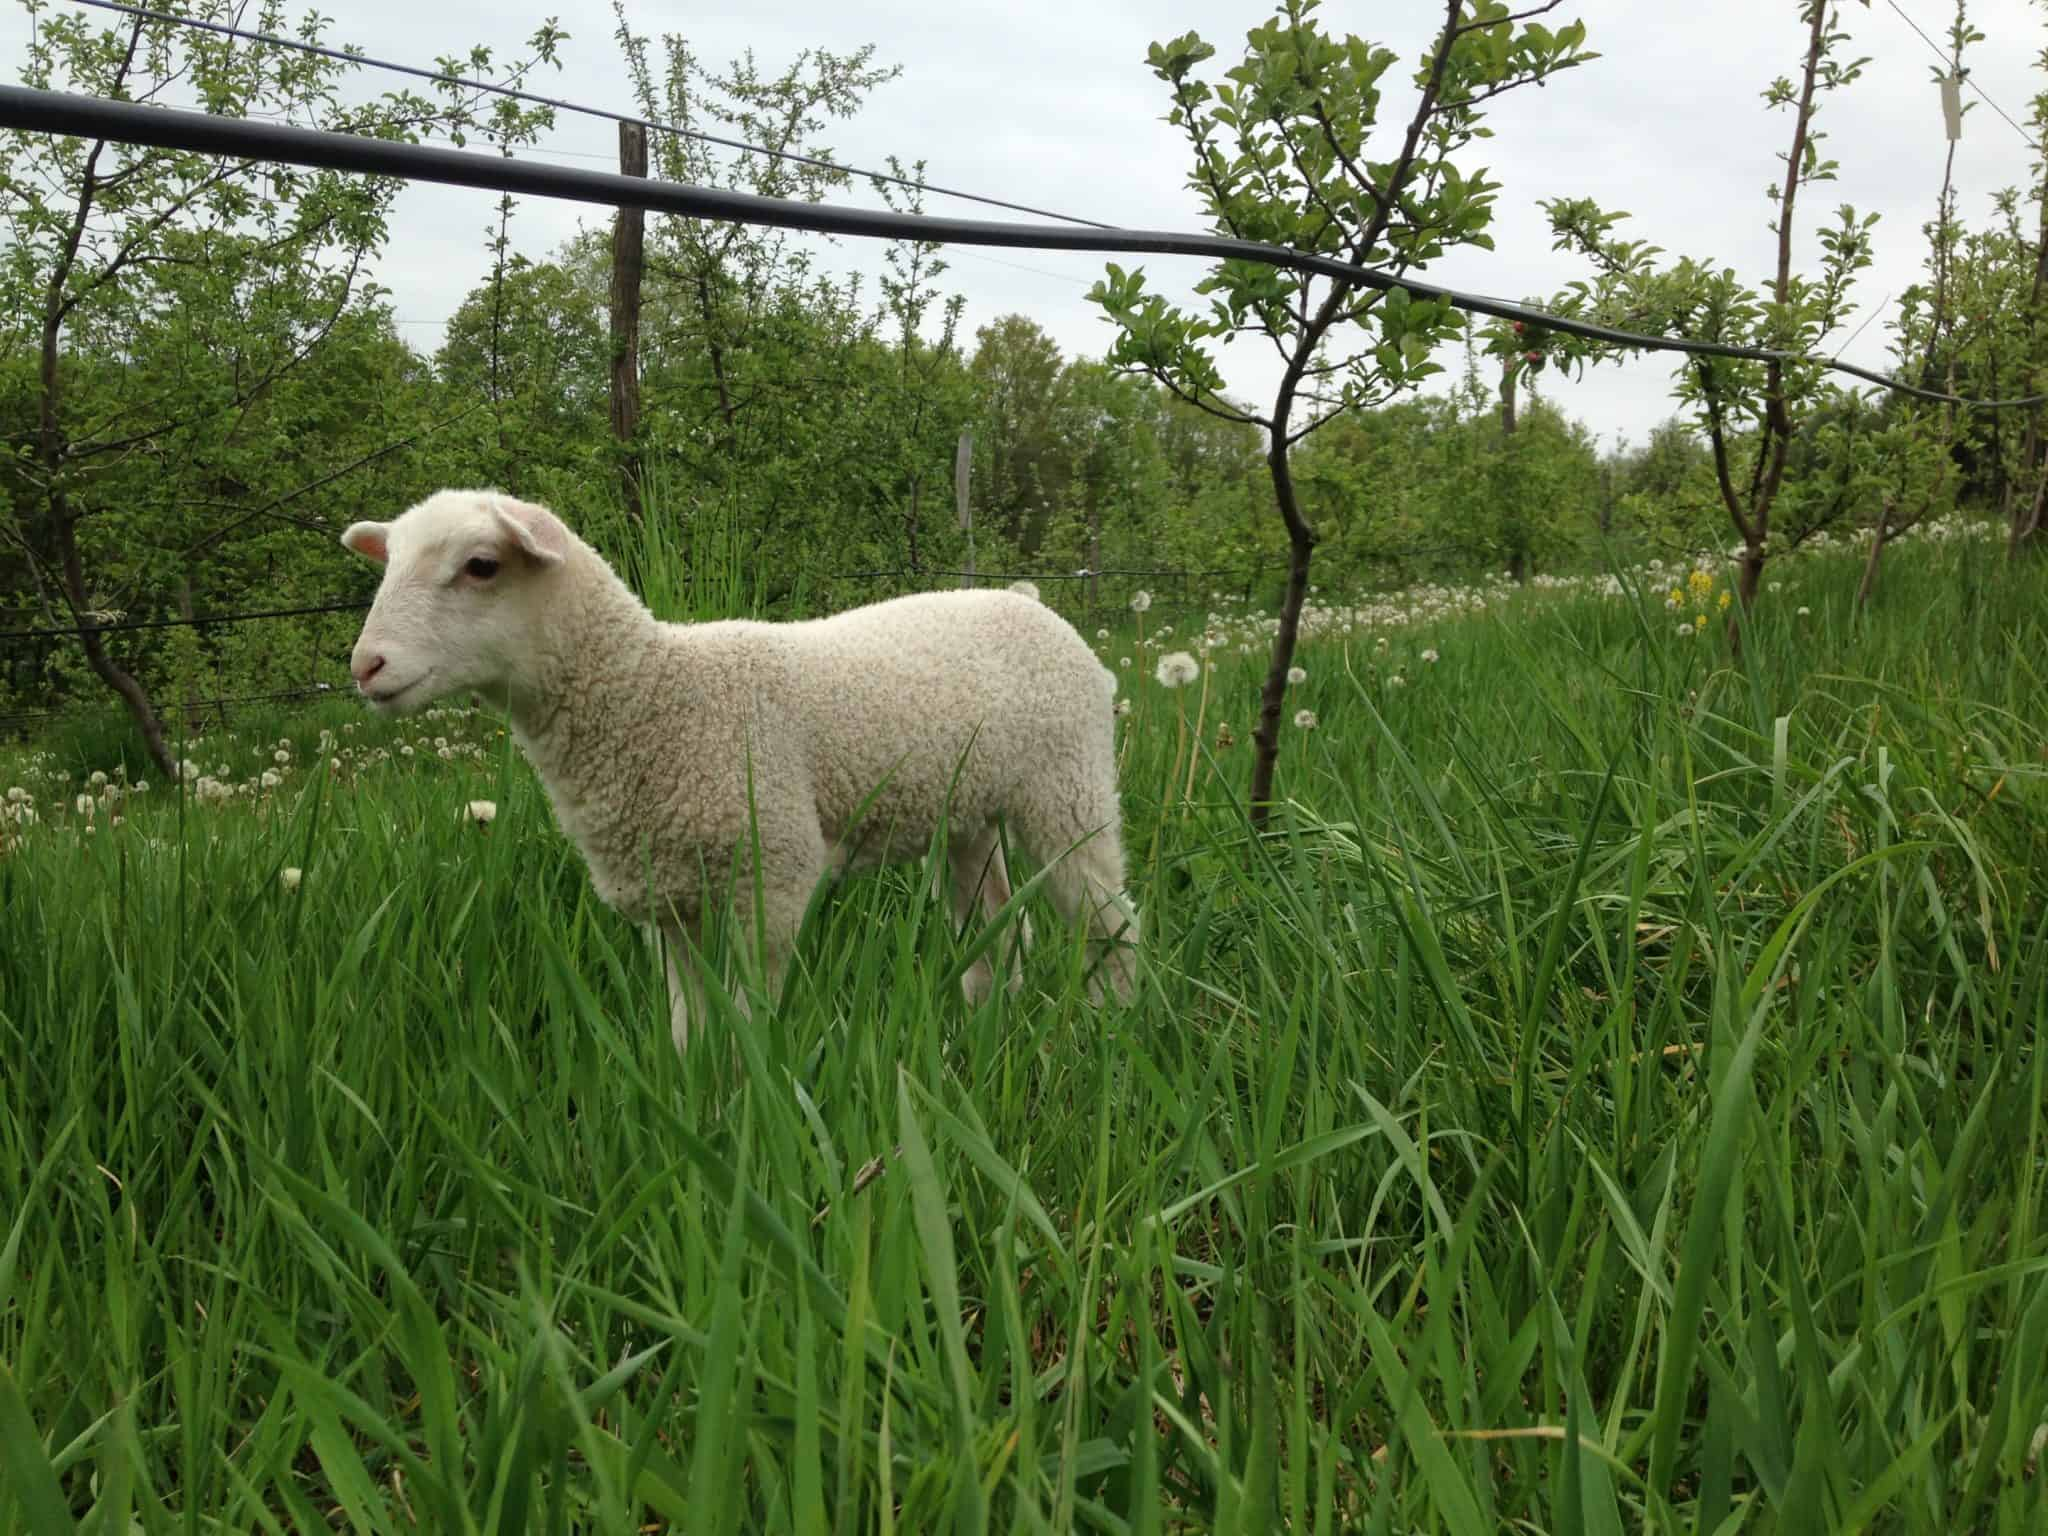 Barnyard (also known as sheep in the orchard) cider descriptor.